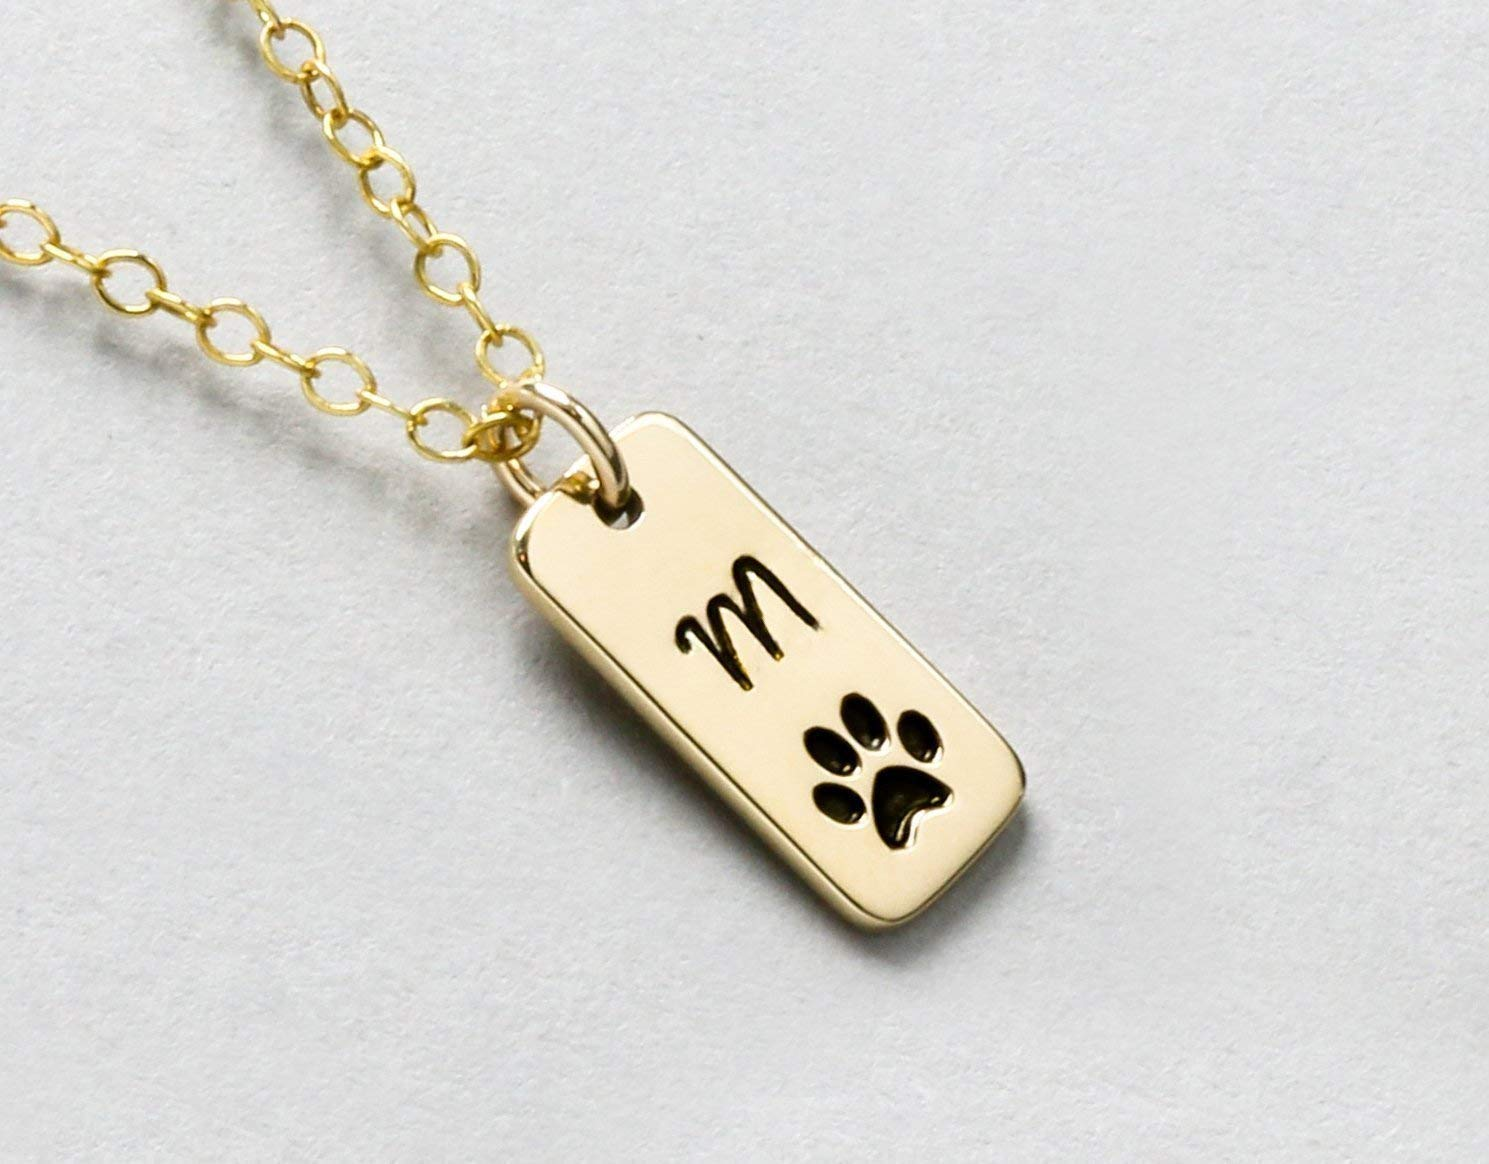 c08f74daf Amazon.com: Personalized Dog Paw Print Initial Necklace or Loss of Pet  Memorial Gift, Dog Walker Gift, Furbaby Necklace, Cat or Dog Pawprint  Jewelry: ...